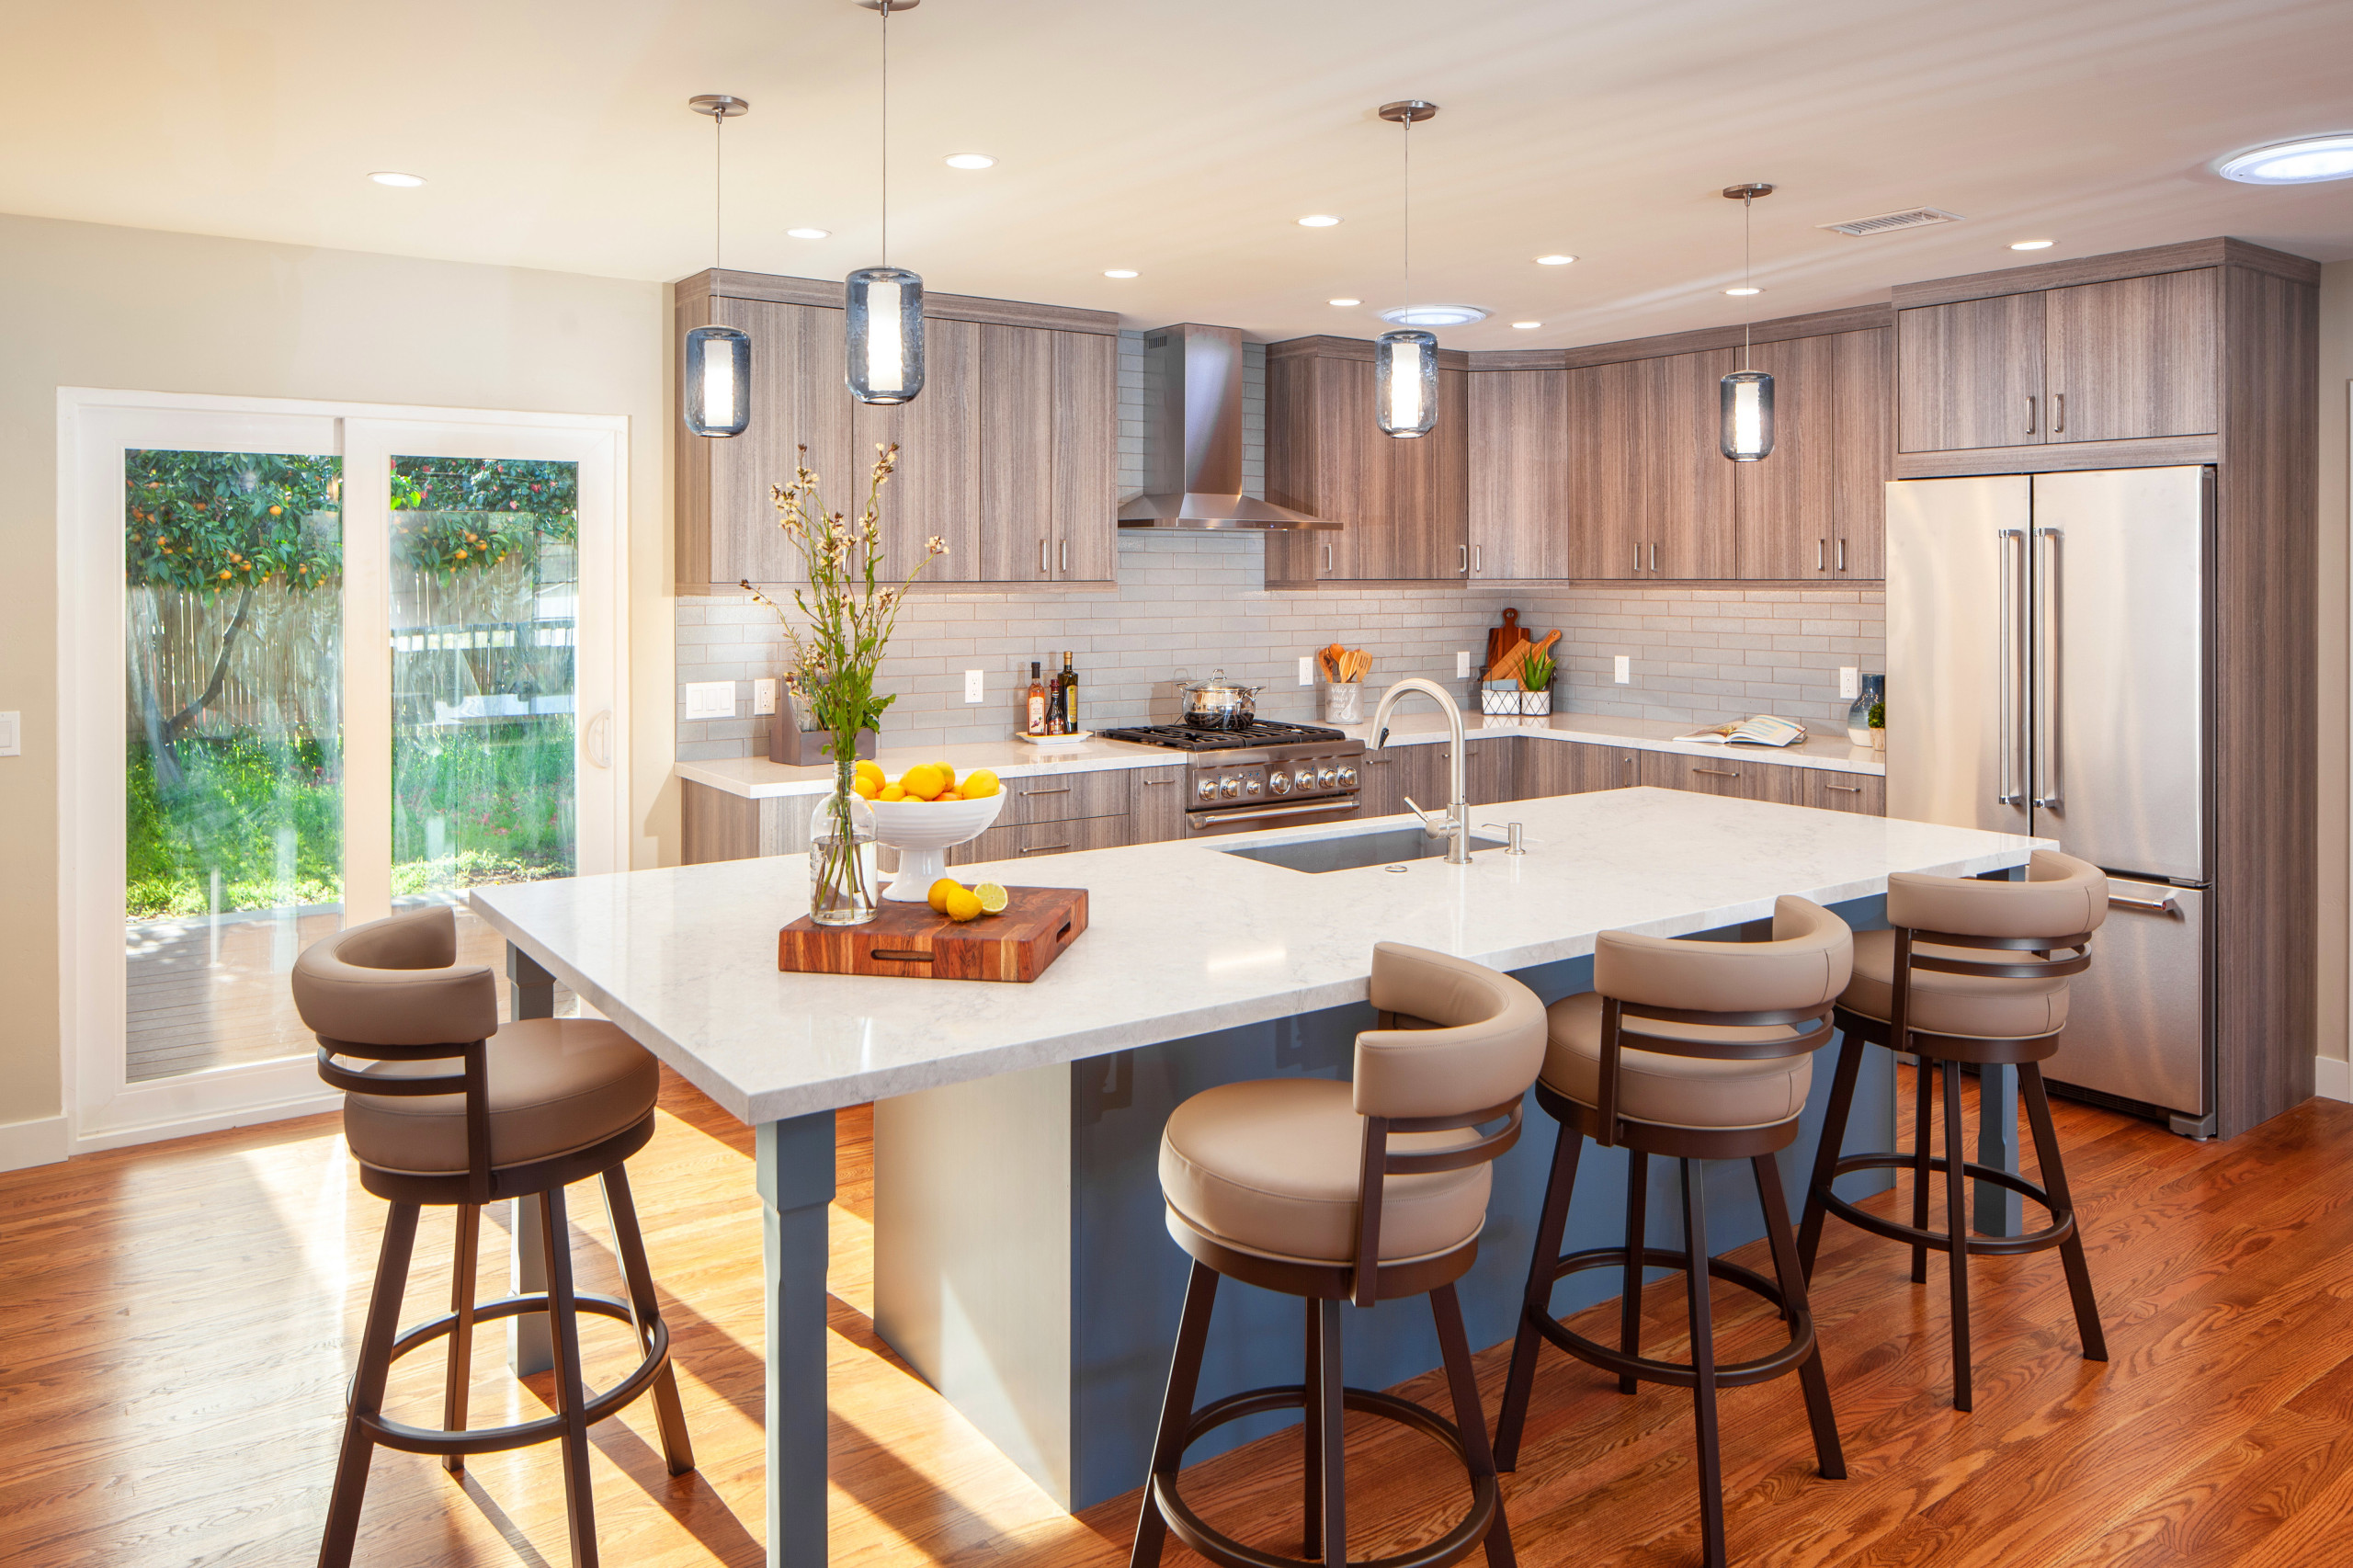 75 Beautiful Contemporary Eat In Kitchen Pictures Ideas September 2020 Houzz